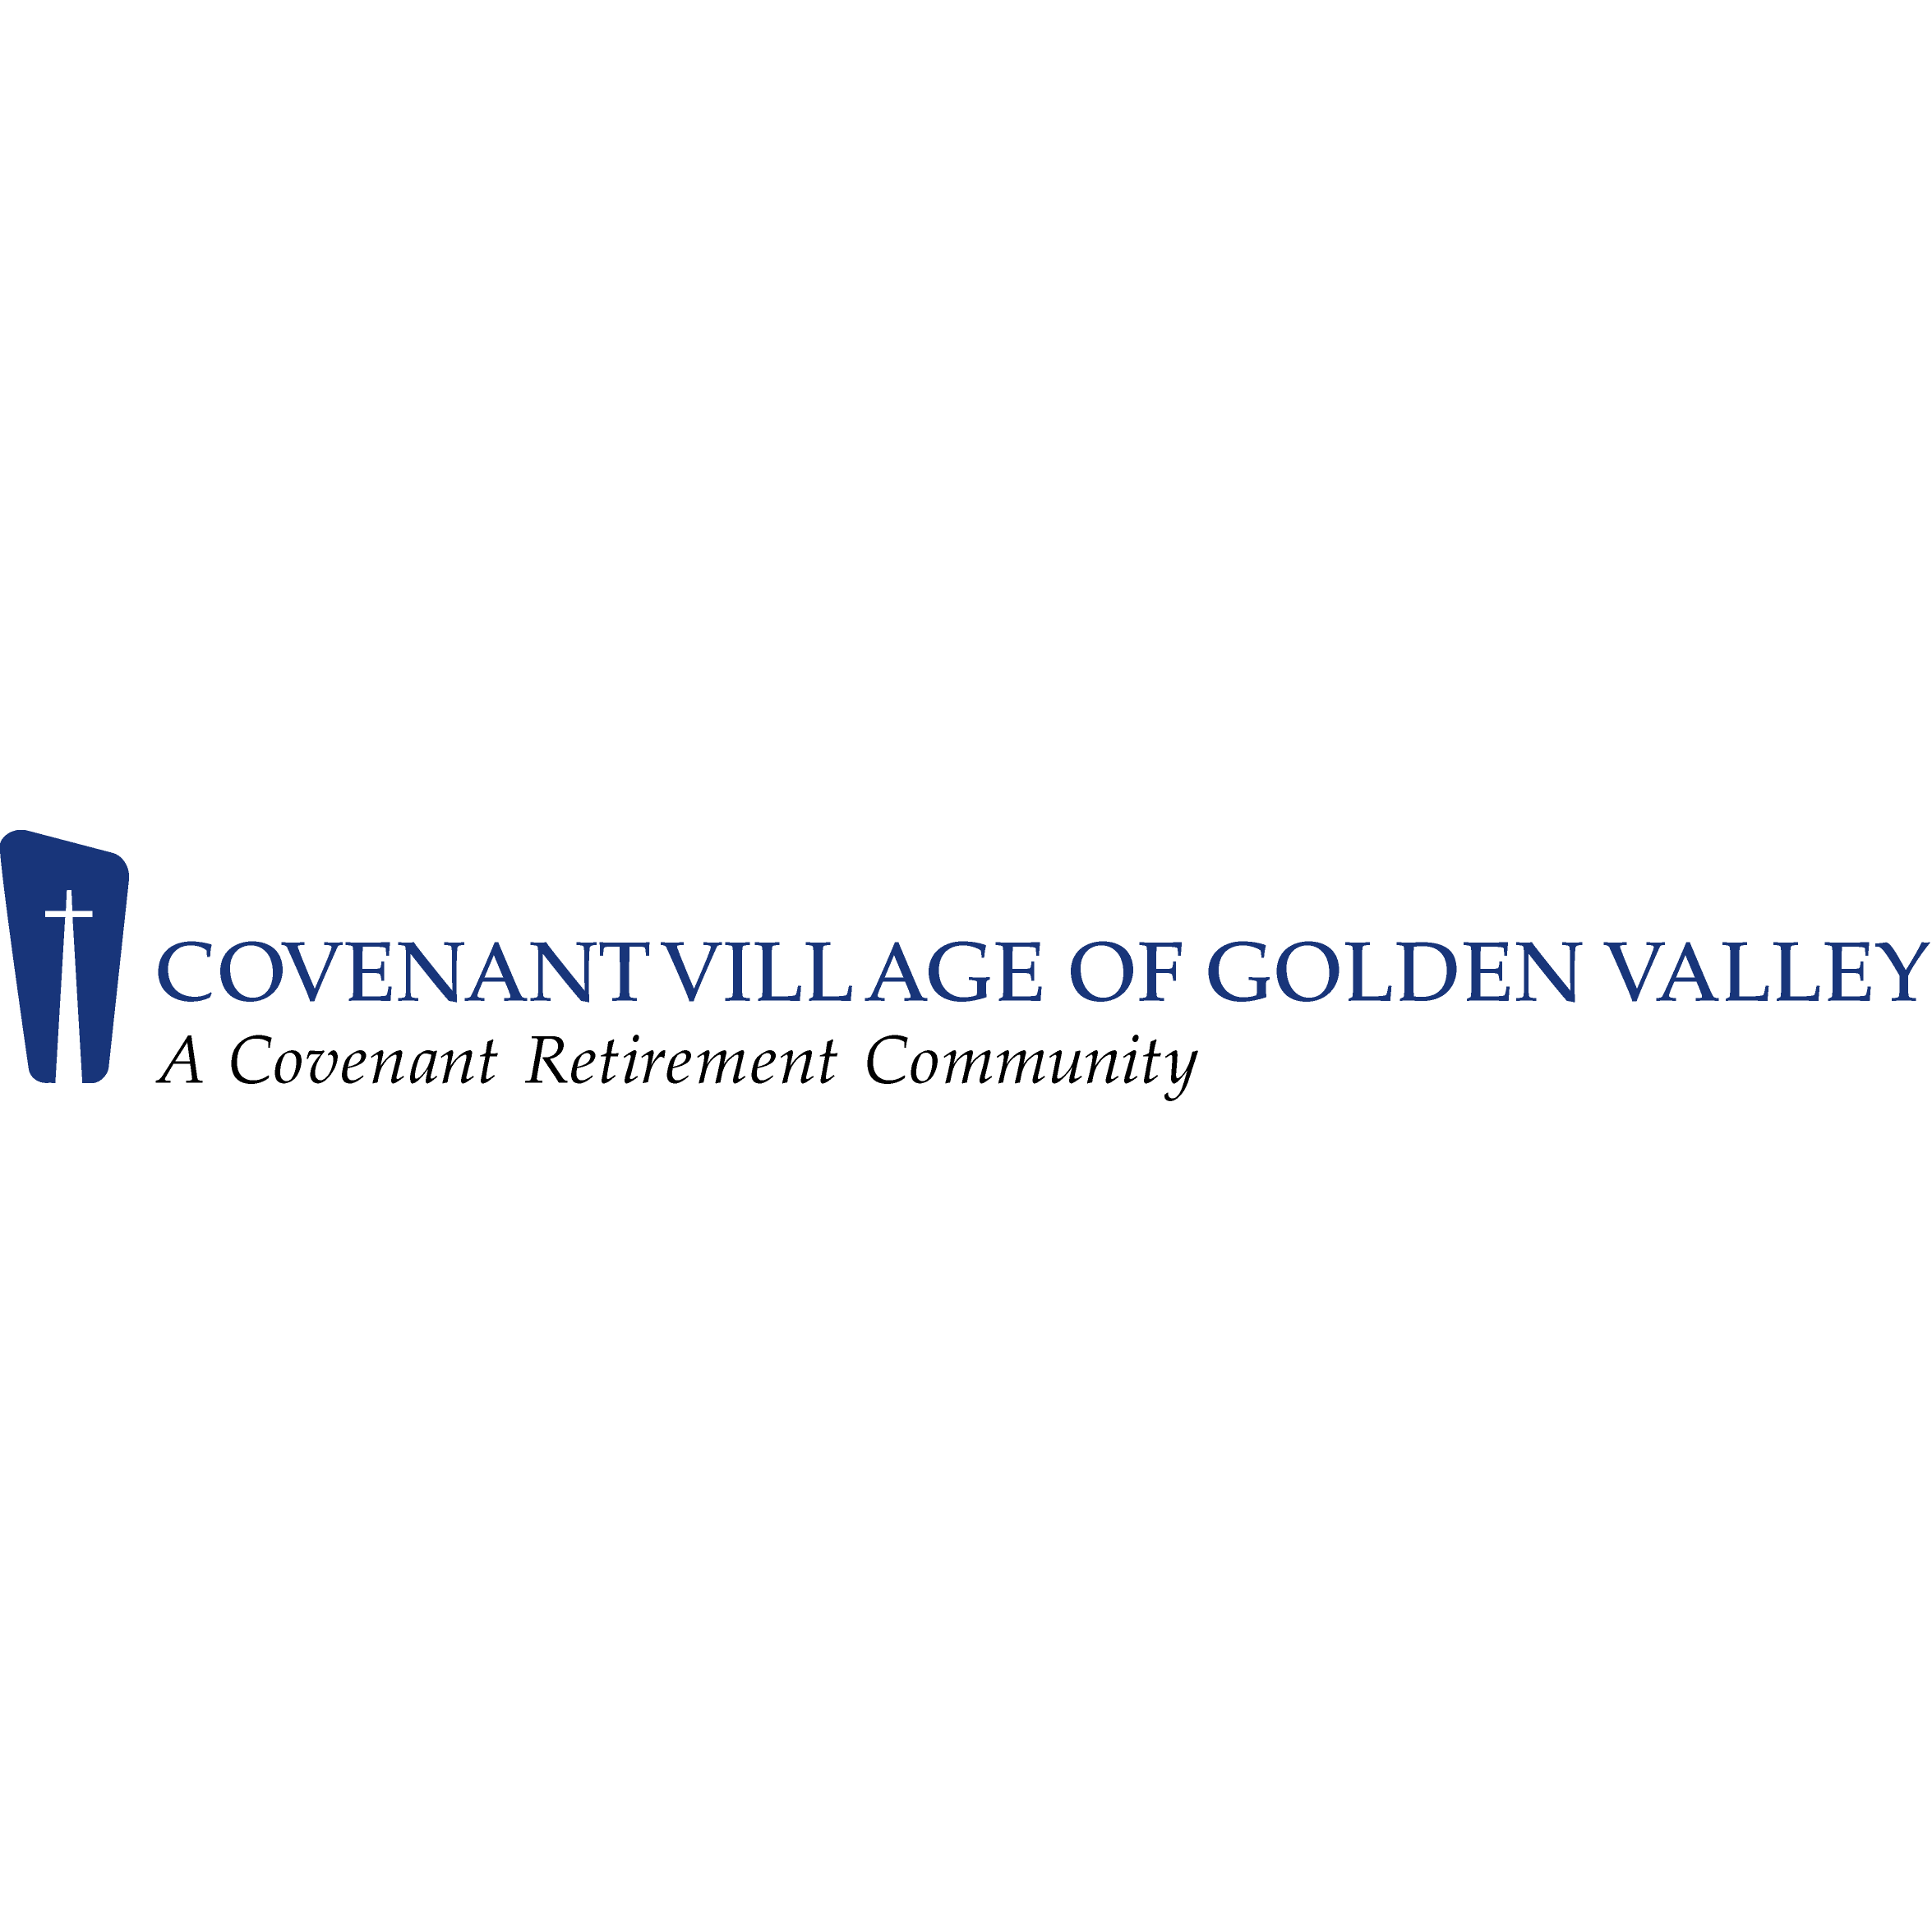 Covenant Village of Golden Valley - Golden Valley, MN - Retirement Communities